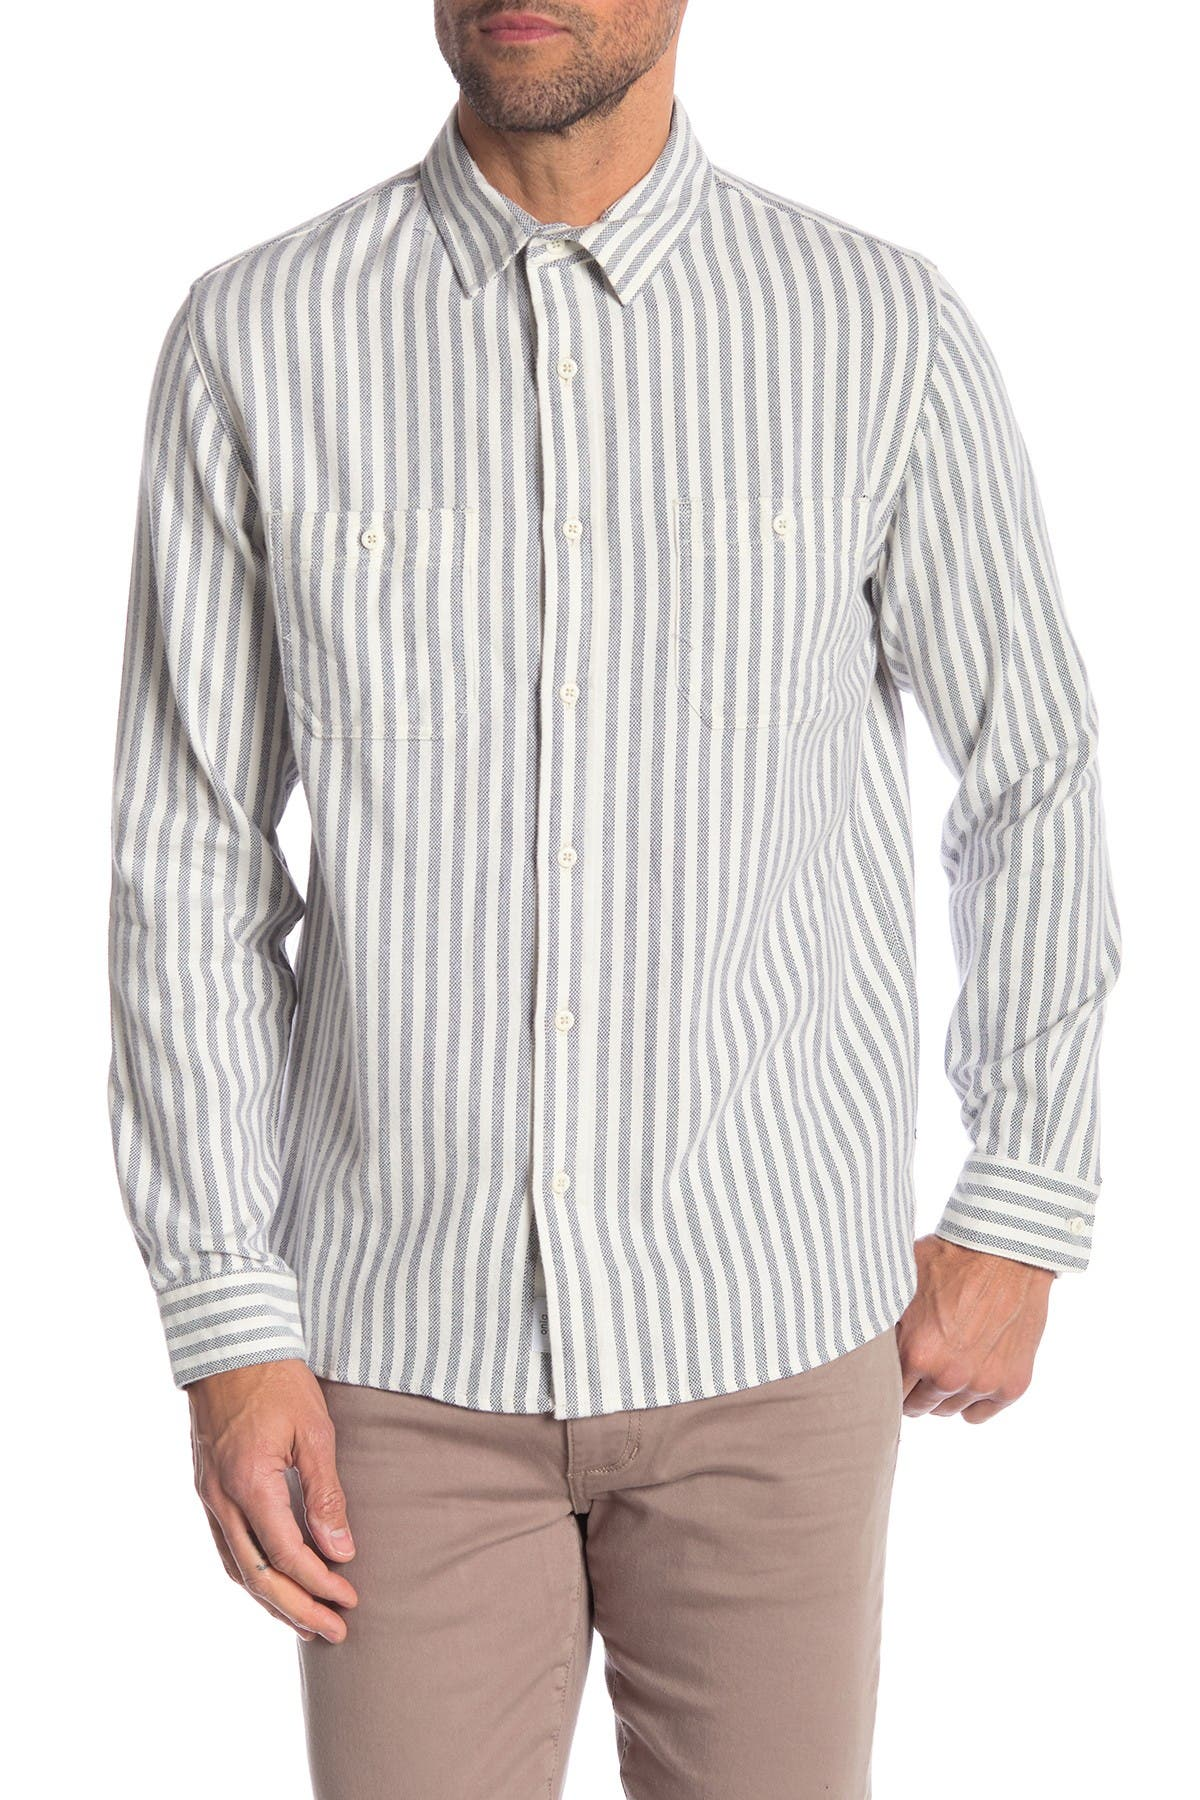 Image of Onia Liam Striped Relaxed Fit Shirt